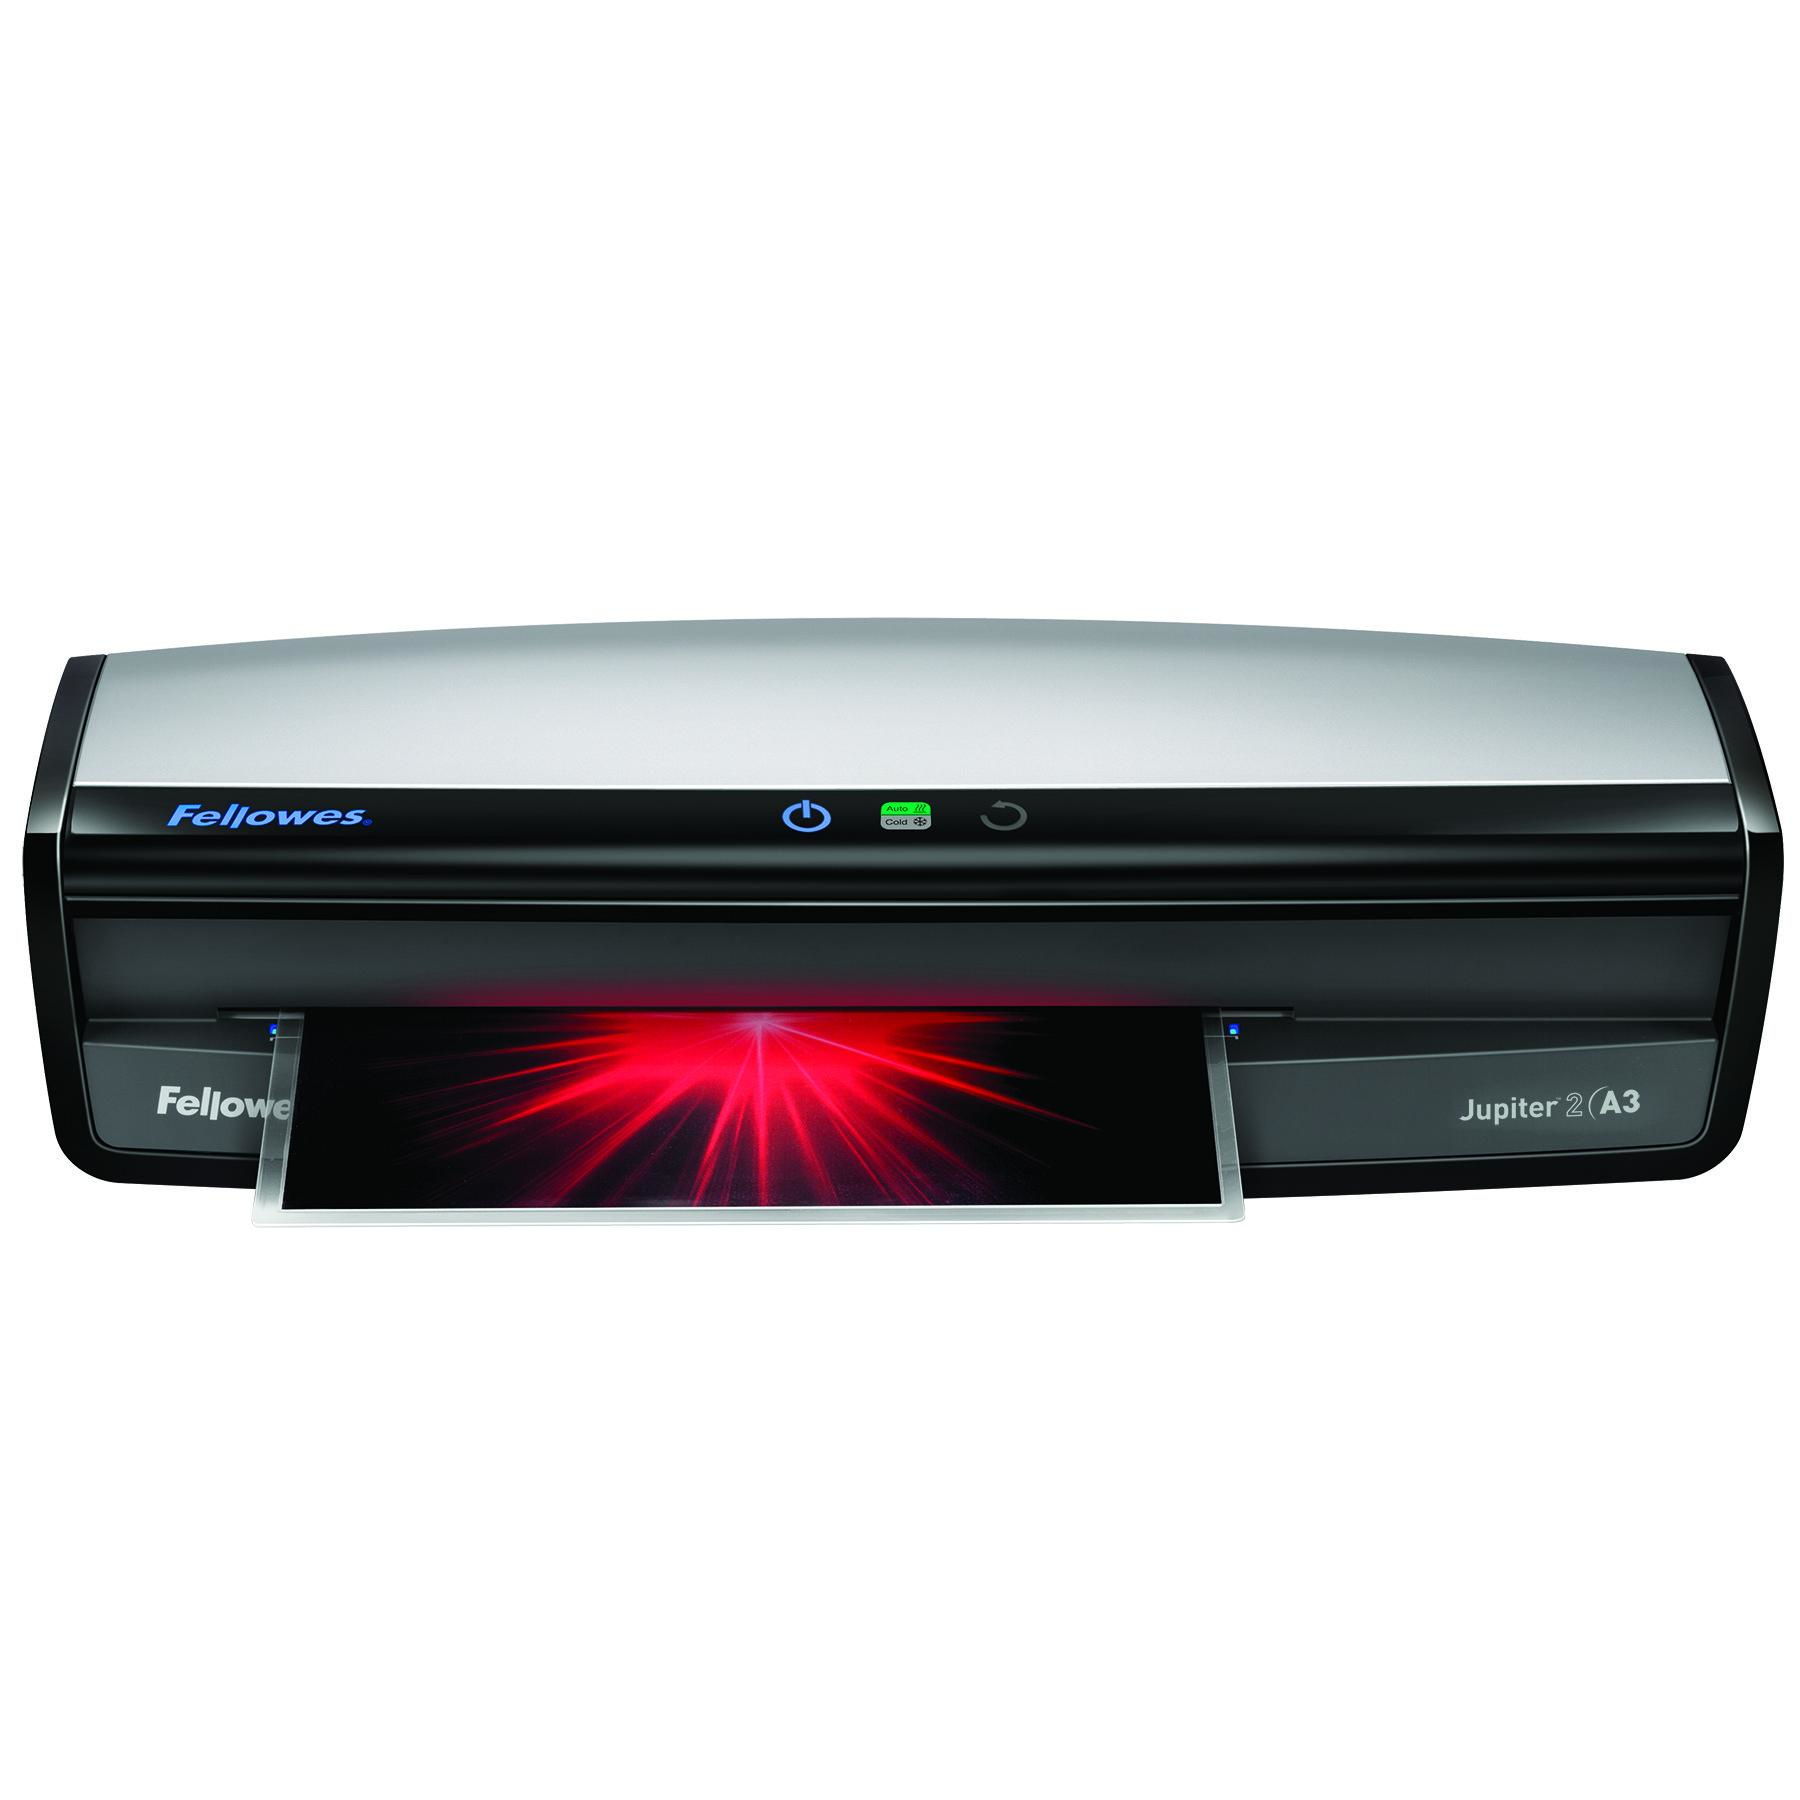 fellowes Fellowes Jupiter 2 A3 Laminator 5733501 - AD01